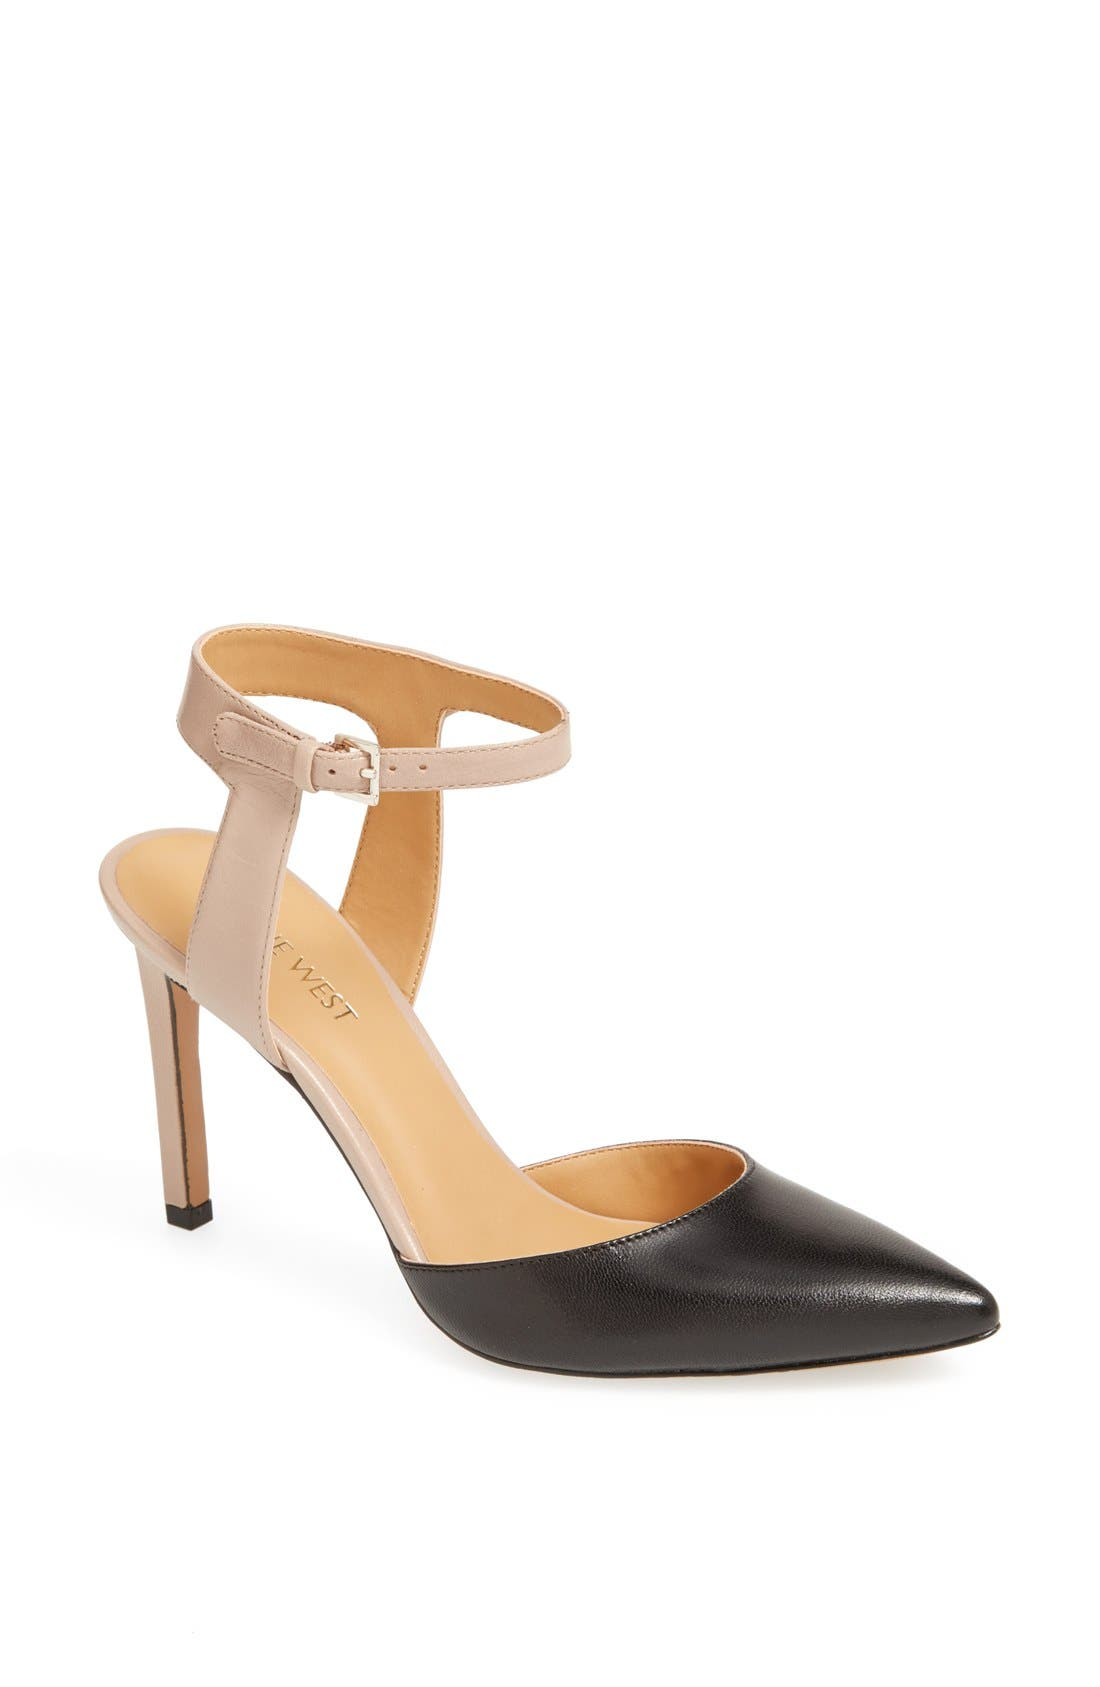 Alternate Image 1 Selected - Nine West 'Capricious' Pointy Toe Pump